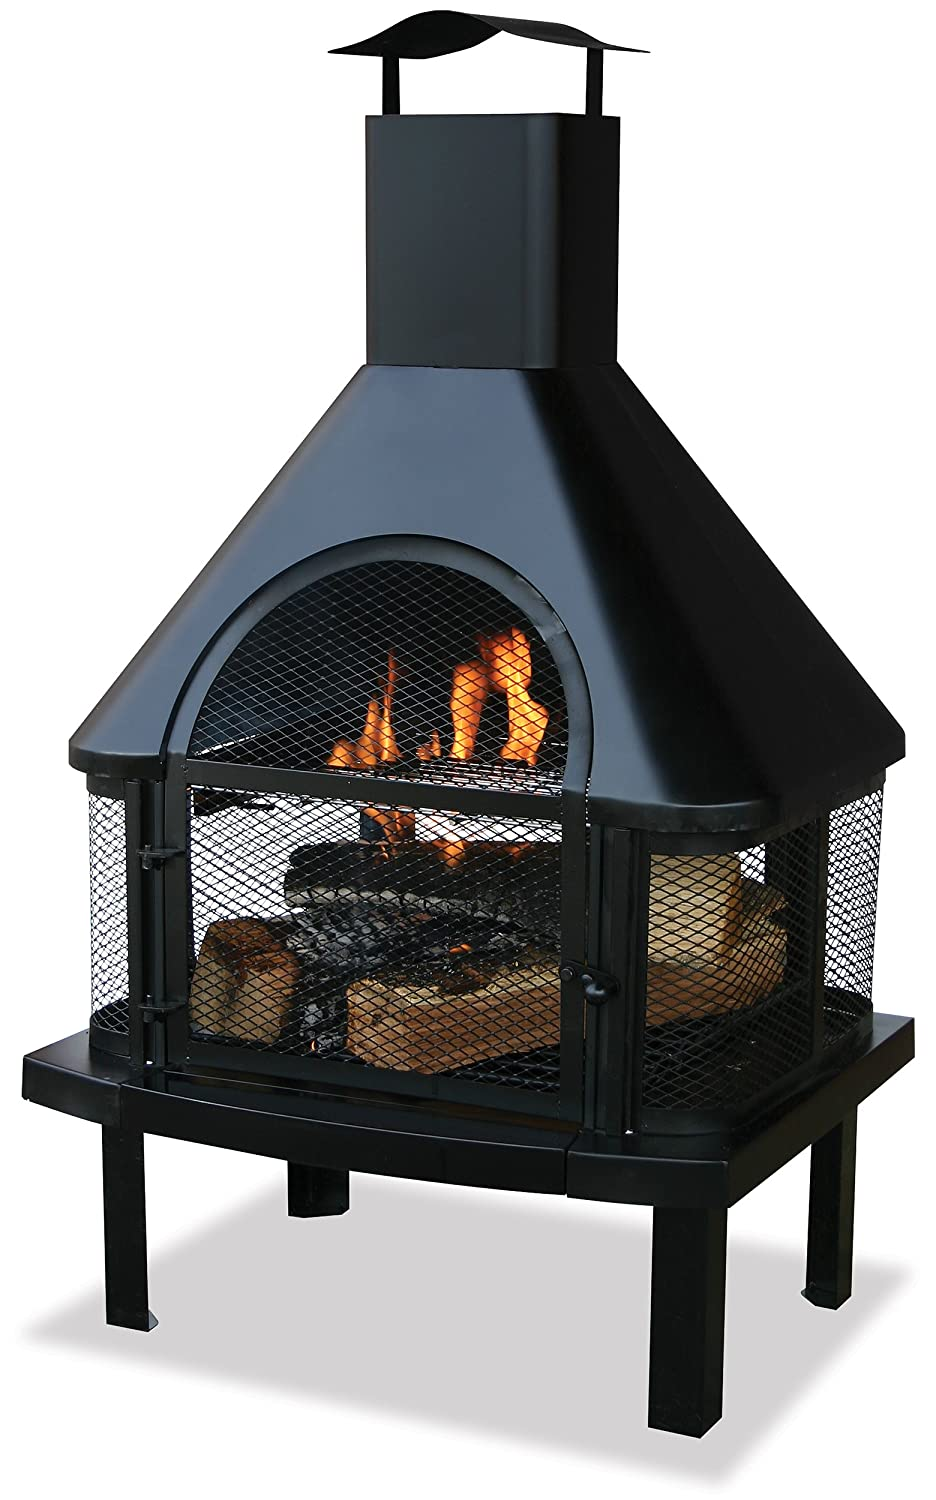 Amazon.com : Uniflame Firehouse with Chimney, Black : Patio, Lawn & Garden - Amazon.com : Uniflame Firehouse With Chimney, Black : Patio, Lawn